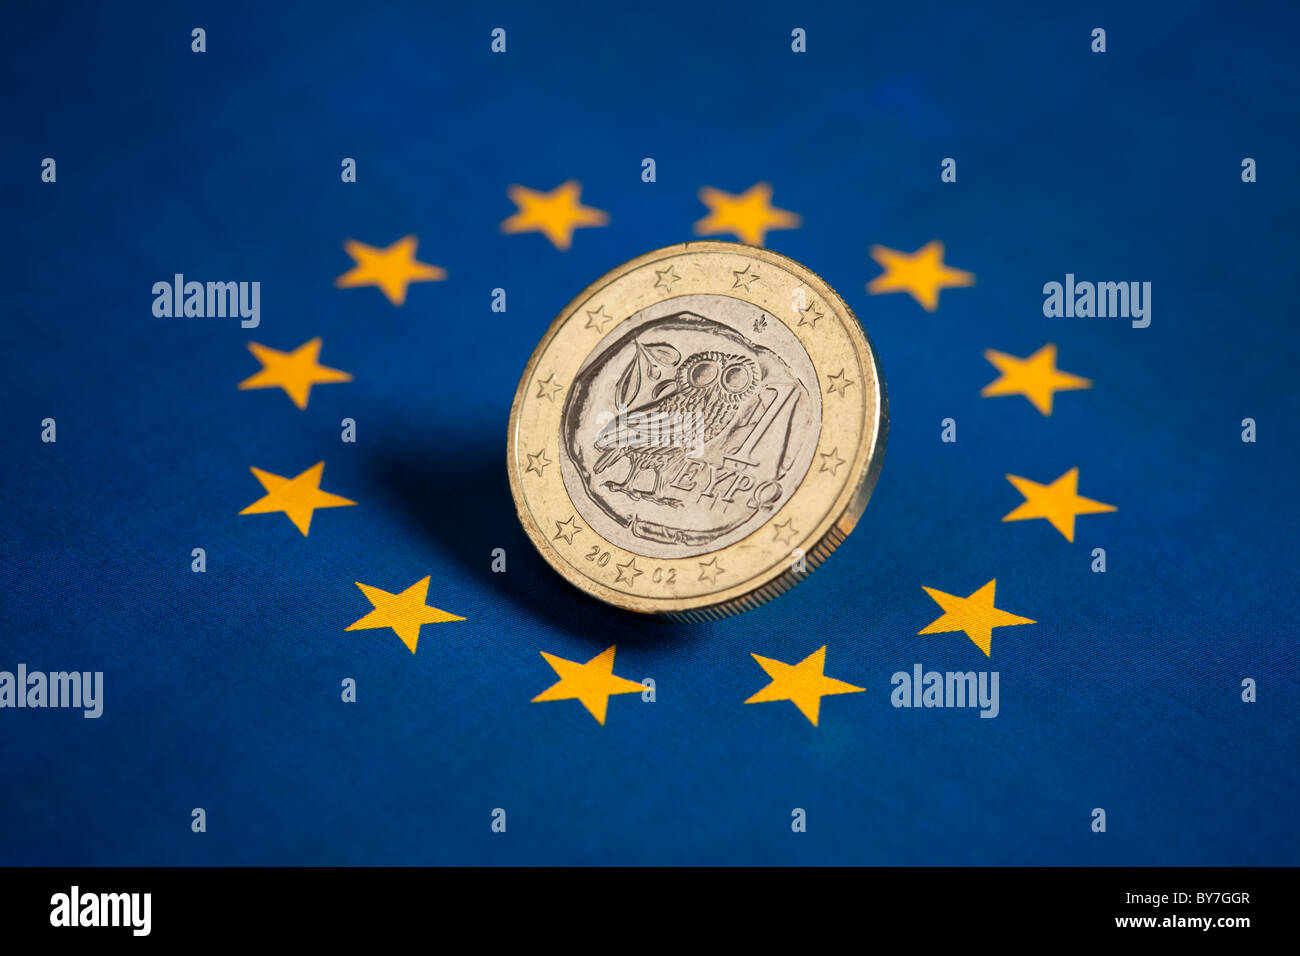 Greek Euro coin on the flag of the European Union - Stock Image